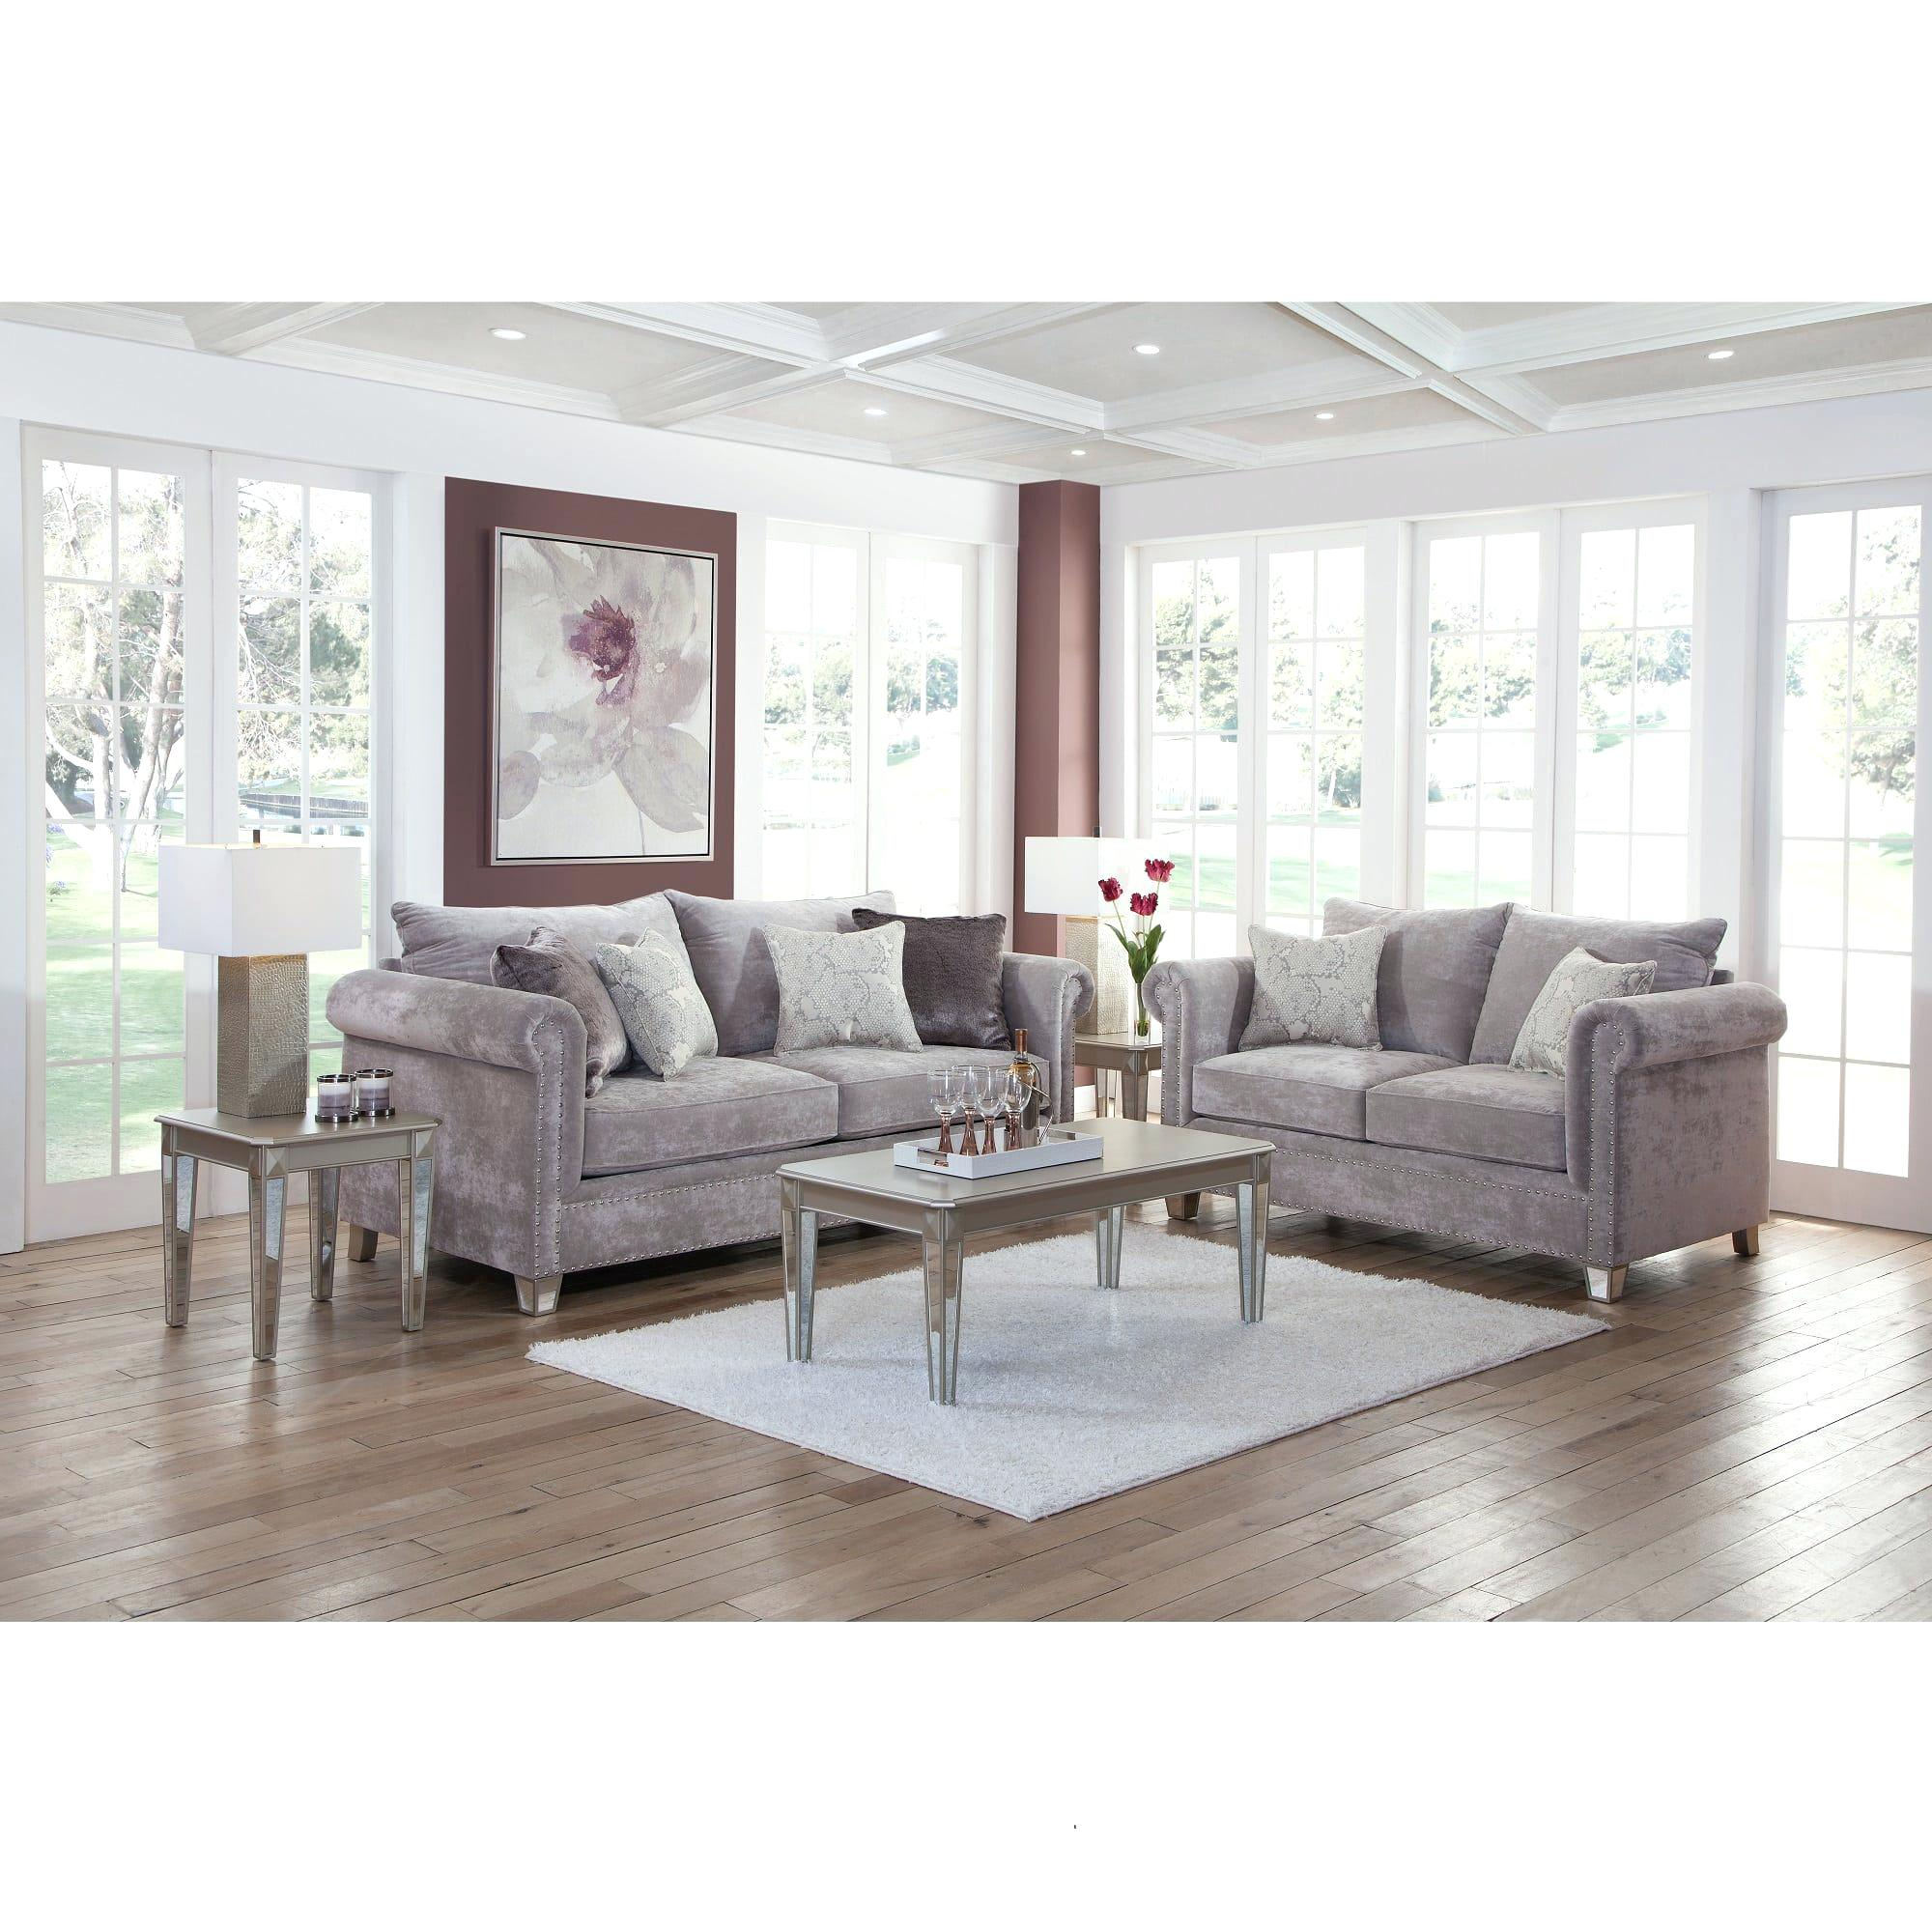 Singular Aarons Furniture Living Room Set Image Design B88506 pertaining to 15 Some of the Coolest Ideas How to Improve Aarons Living Room Sets